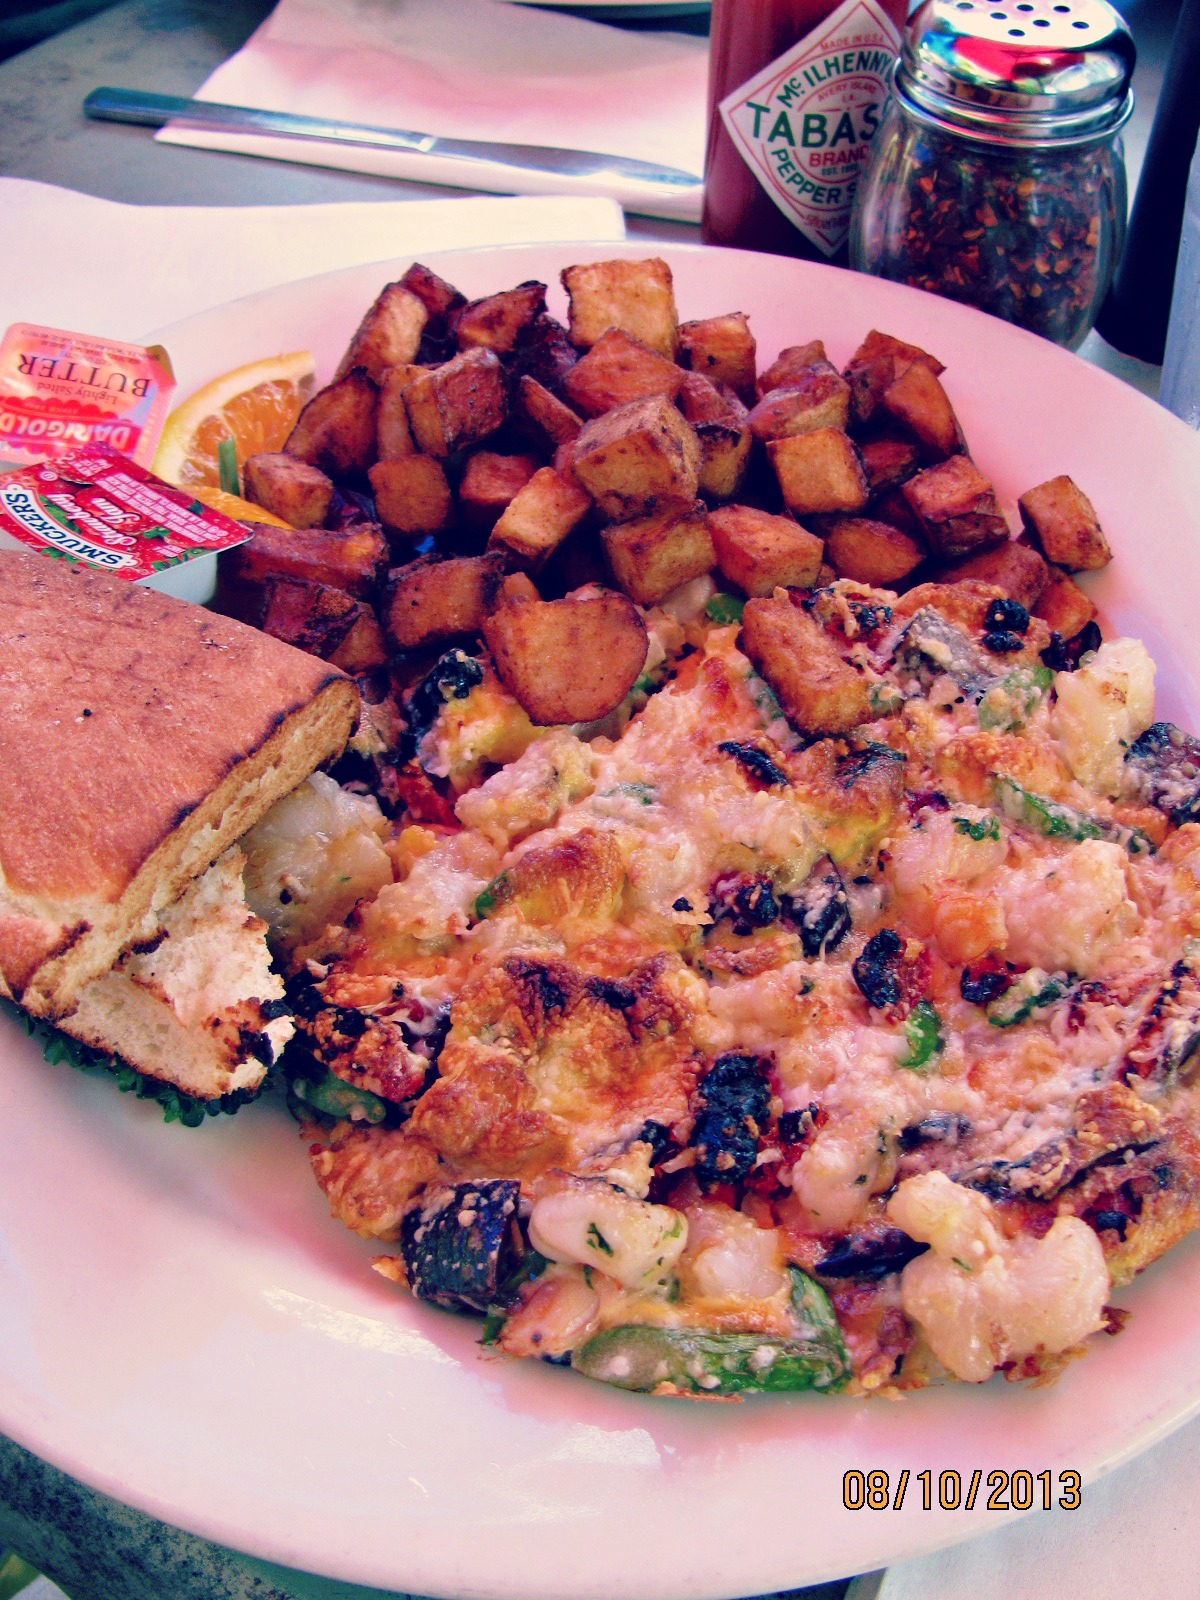 C&O Trattoria // My Lobster & Shrimp Frittata